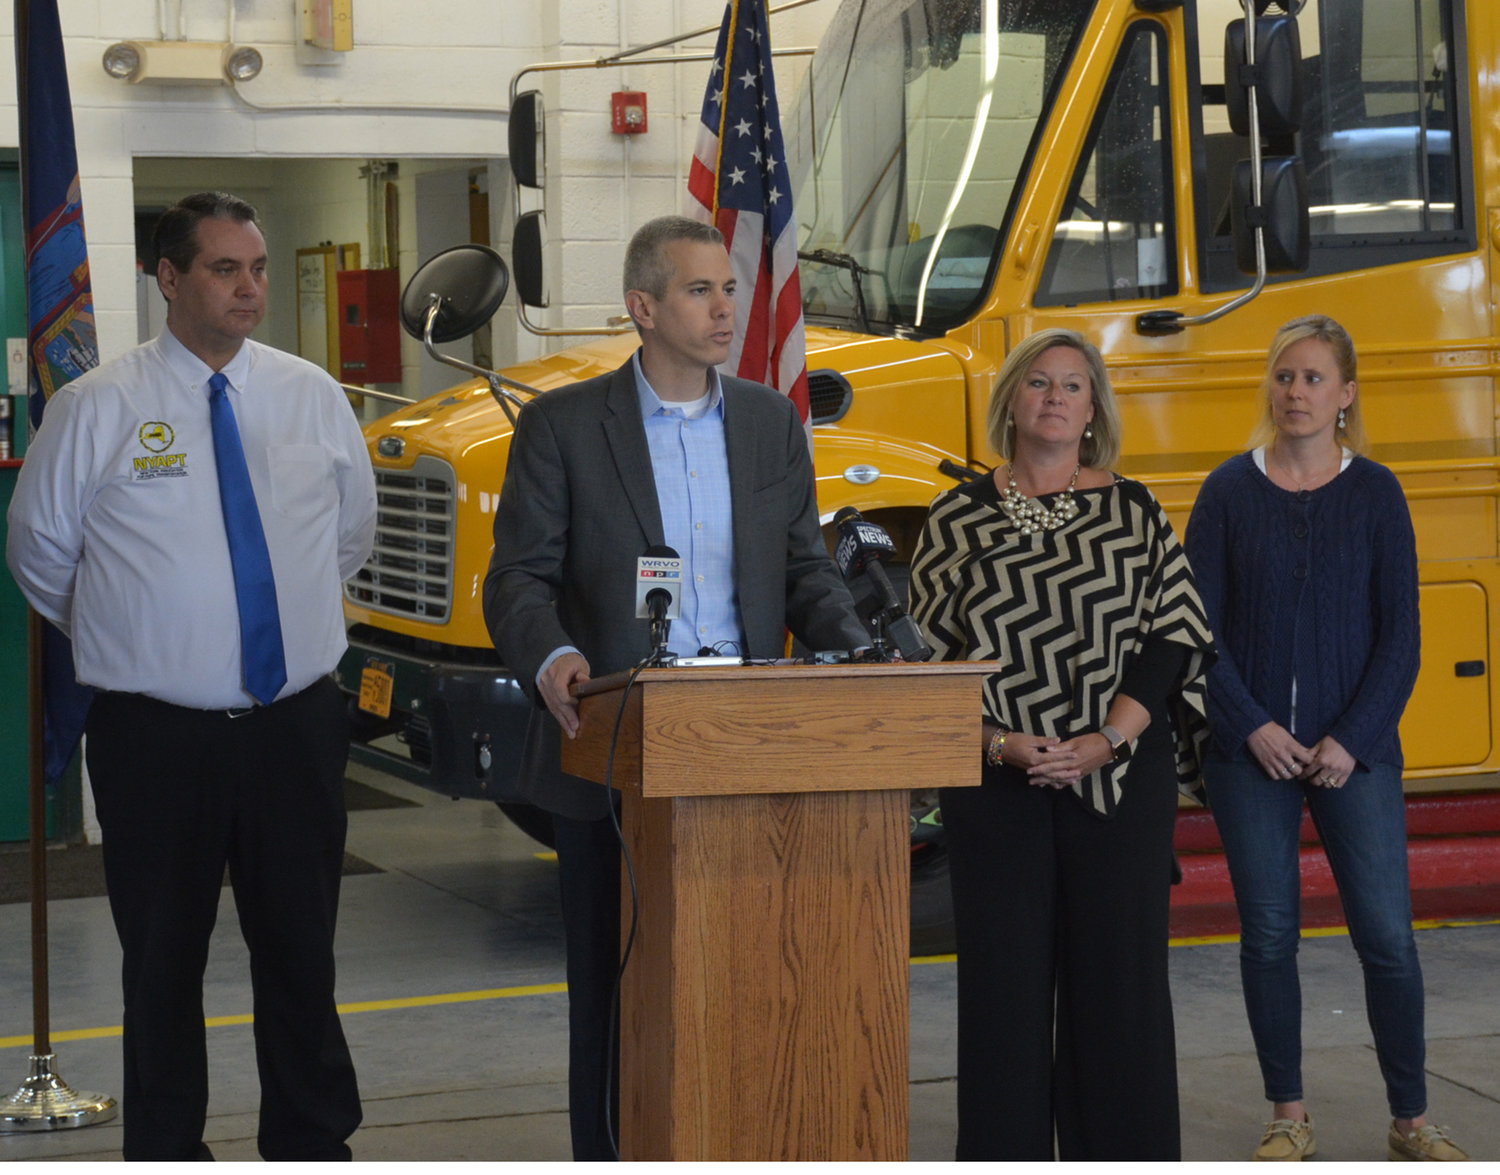 NEW LEGISLATION ANNOUNCED — U.S. Rep. Anthony Brindisi addresses Westmoreland school bus drivers about the new bill he is co-sponsoring designed to help strengthen safety concerns for school bus boarding and exciting. He explained the bill has bipartisan support and is hopeful for it's passing within the year.